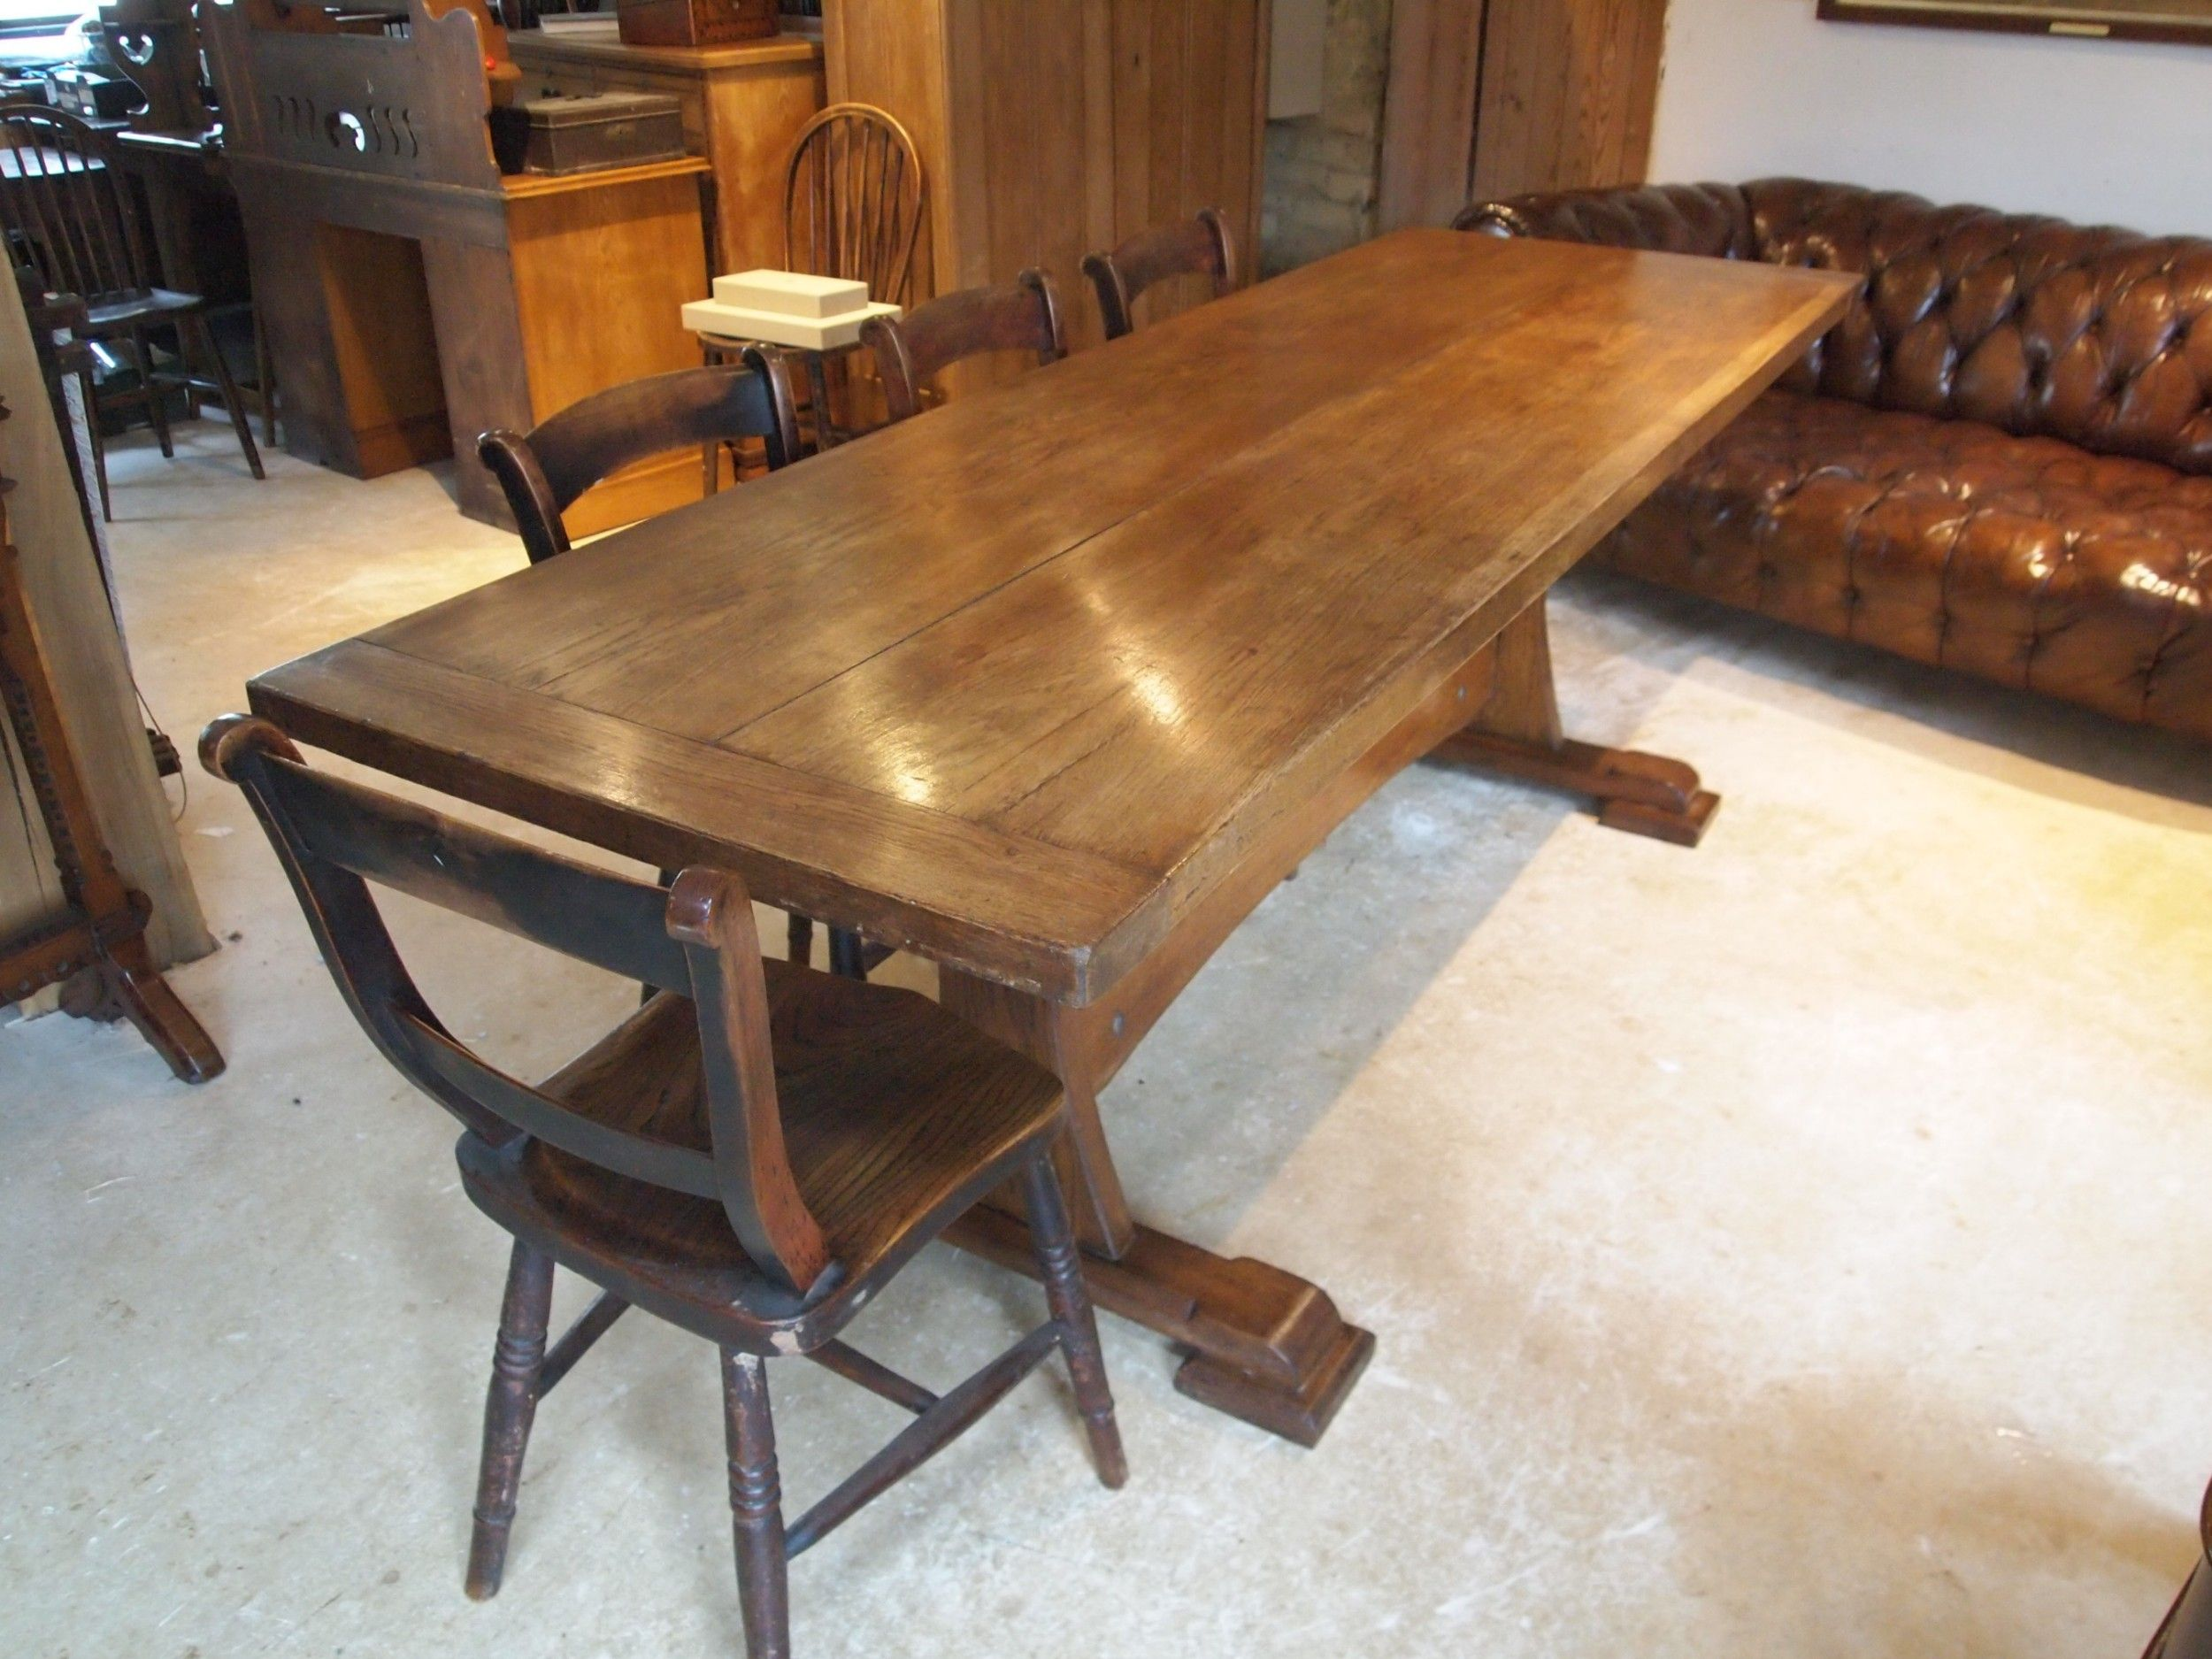 Table Refectory Farmhouse Dining Arts And Crafts Oak C1900